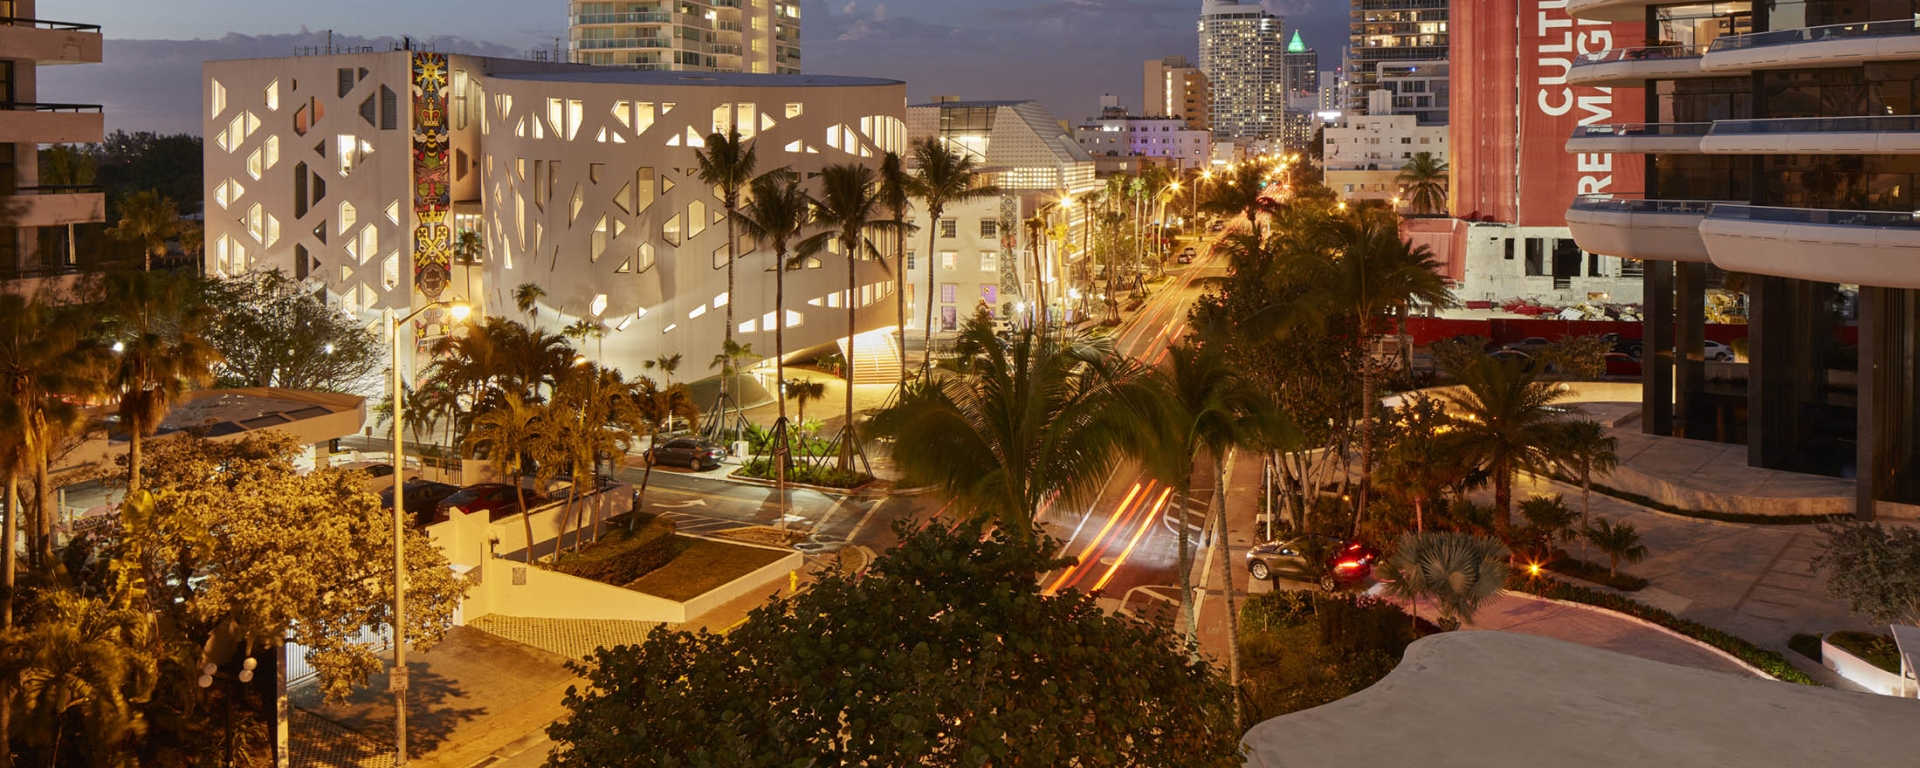 faena district at night